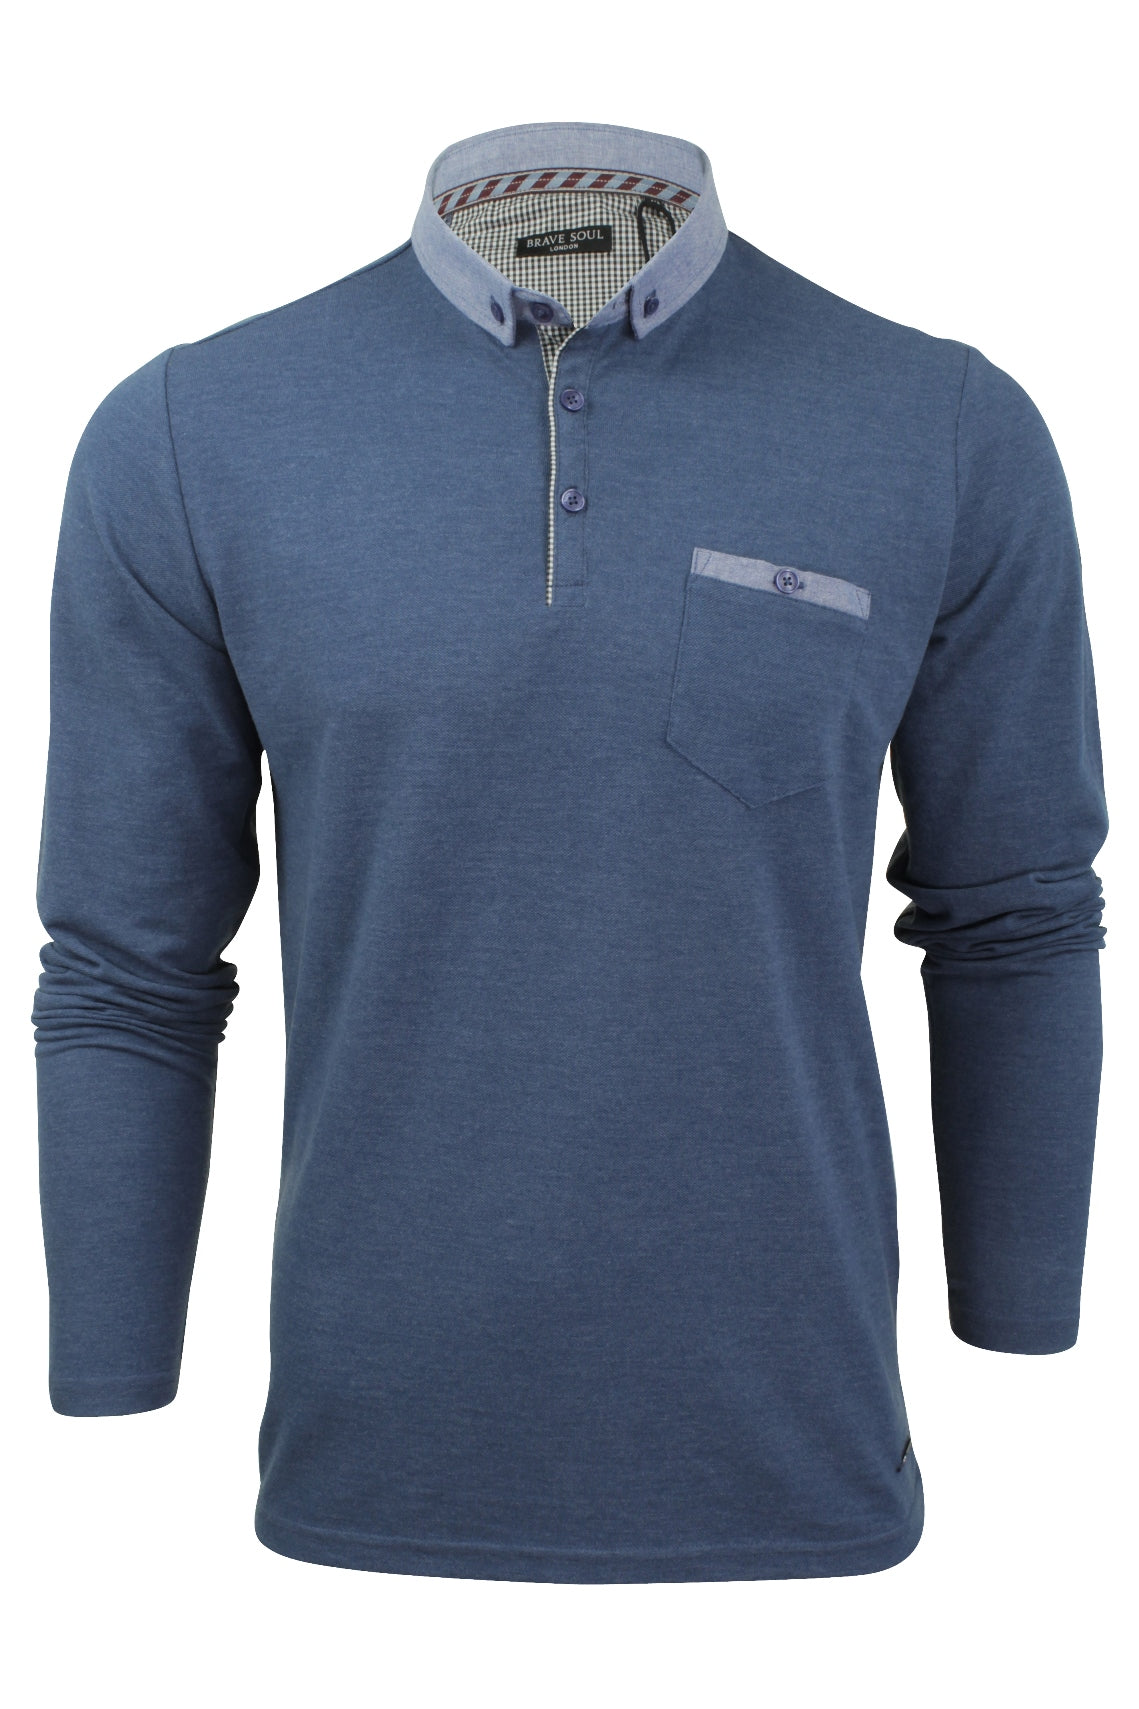 Mens Long Sleeve Polo Shirt by Brave Soul-Main Image